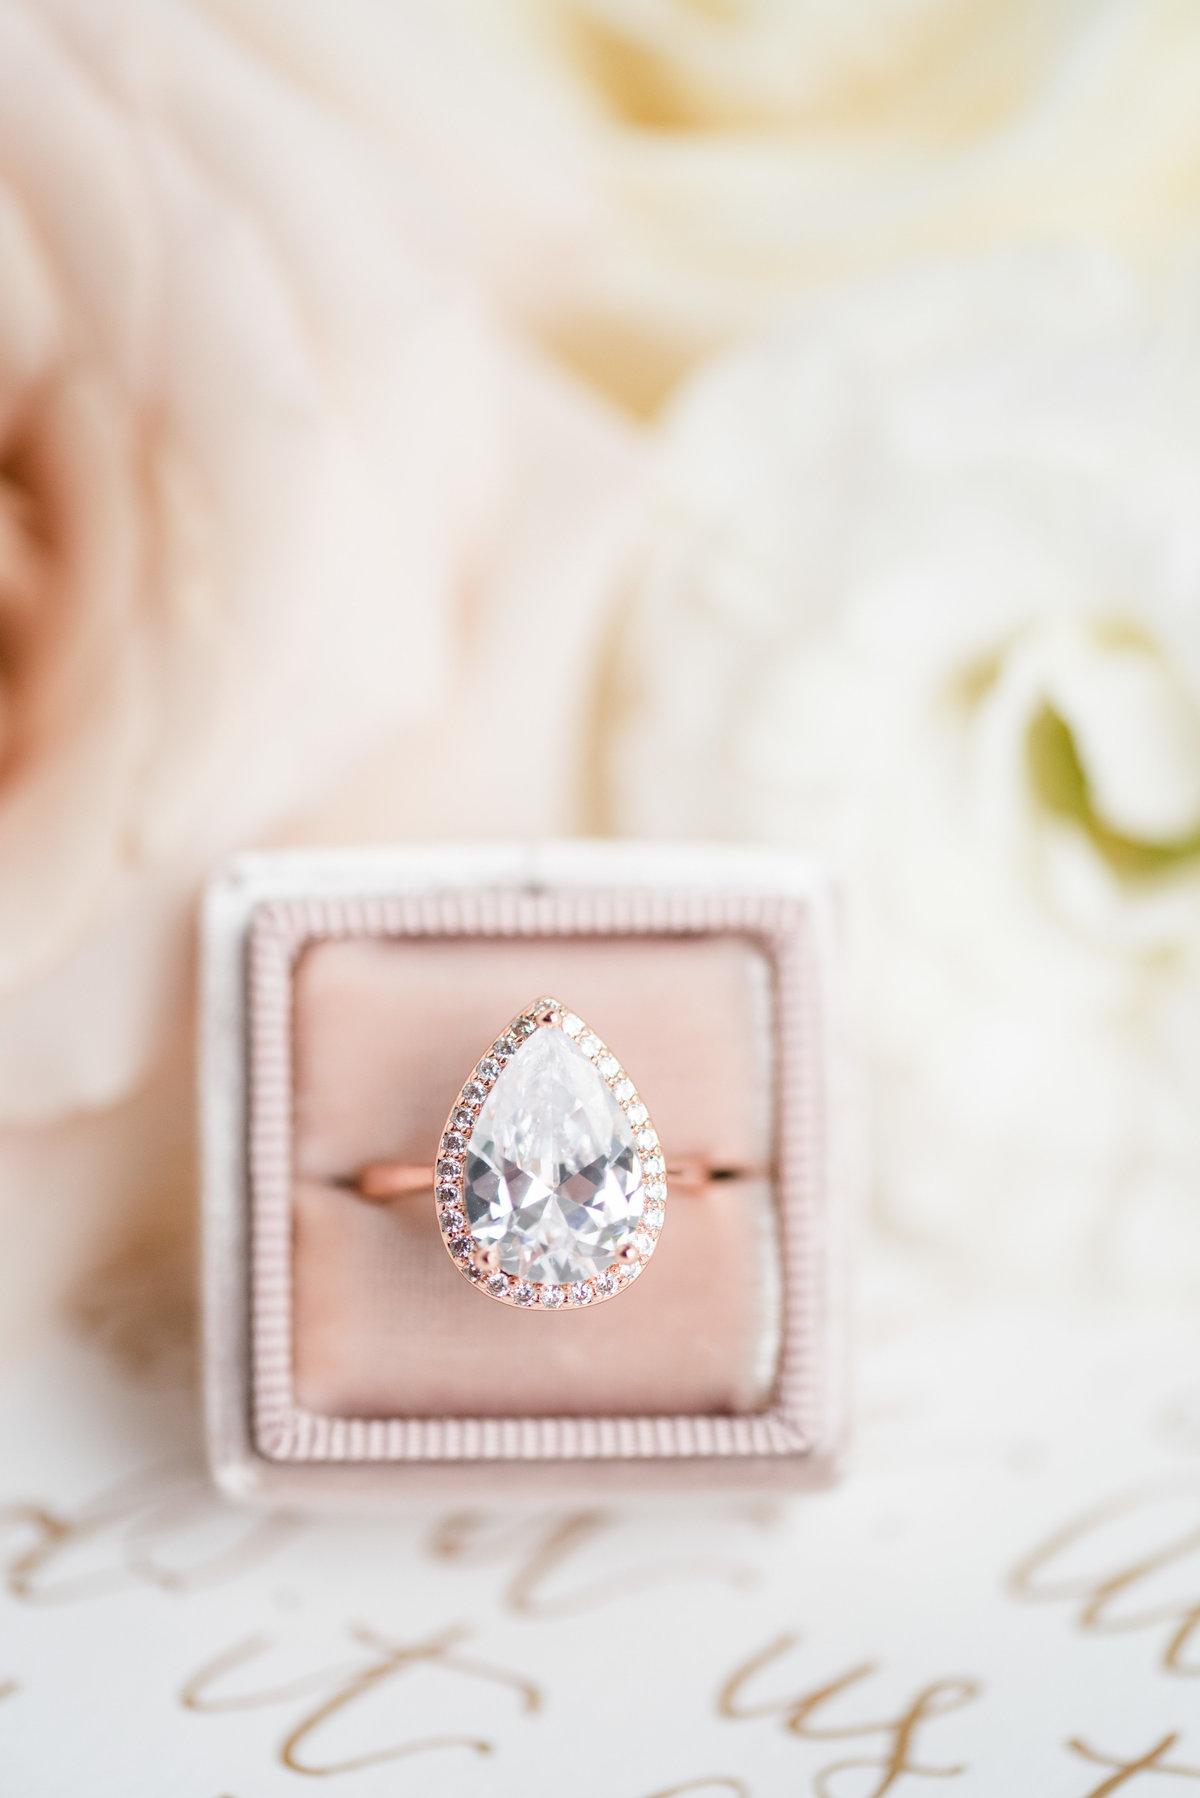 A teardrop diamond ring sits in a pink The Mrs. Box